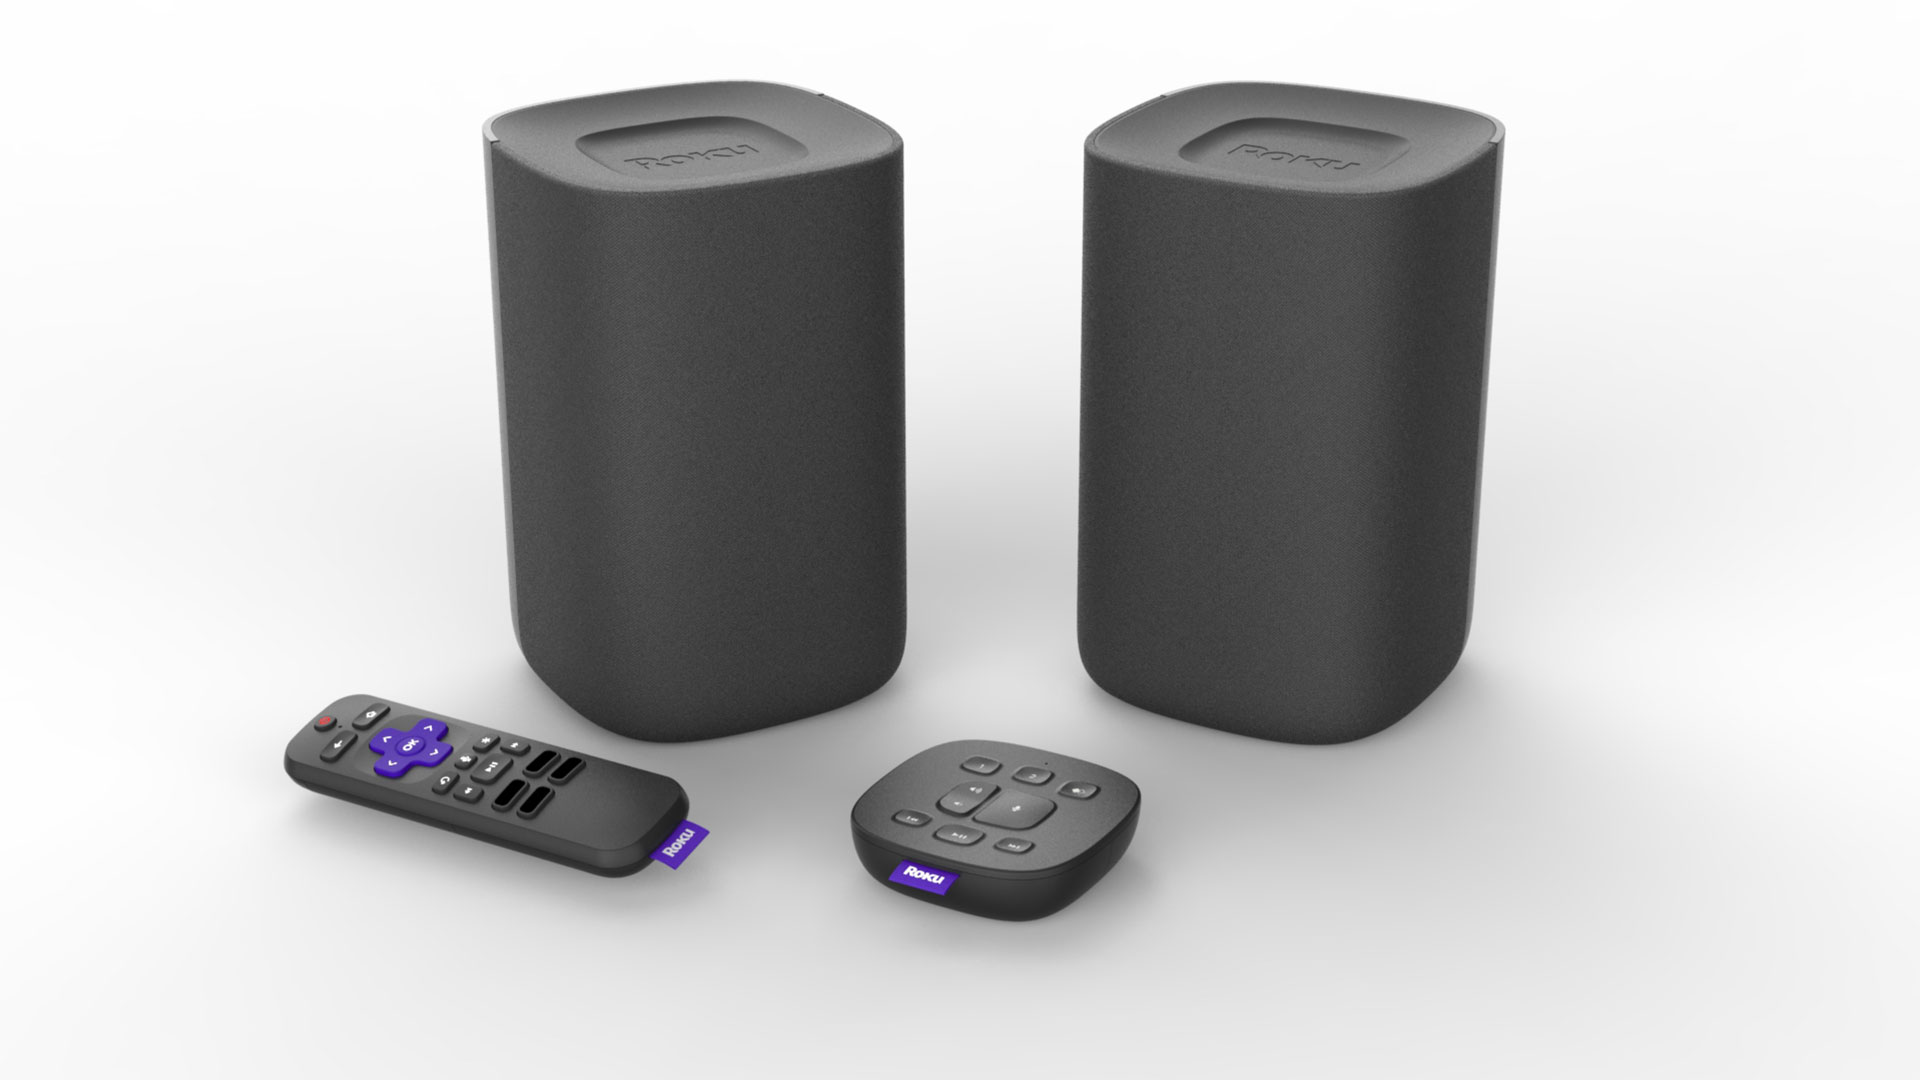 Roku's voice-powered wireless speakers and tabletop remote start